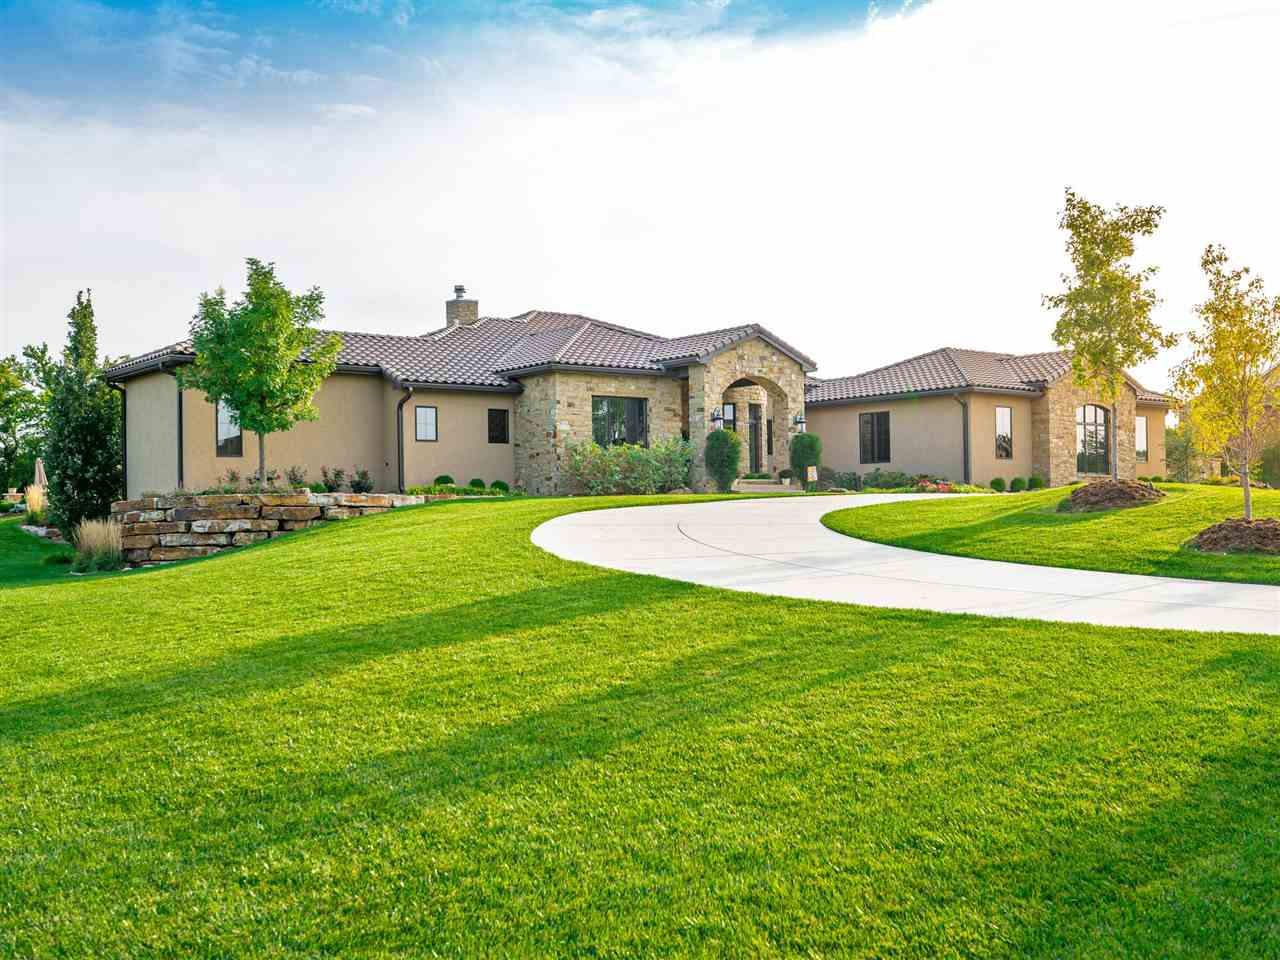 IMMACULATE PROPERTY WITH JUST OVER 2 ACRES OF MANICURED LANDSCAPING AND A BREATHTAKING COVERED ENTRA